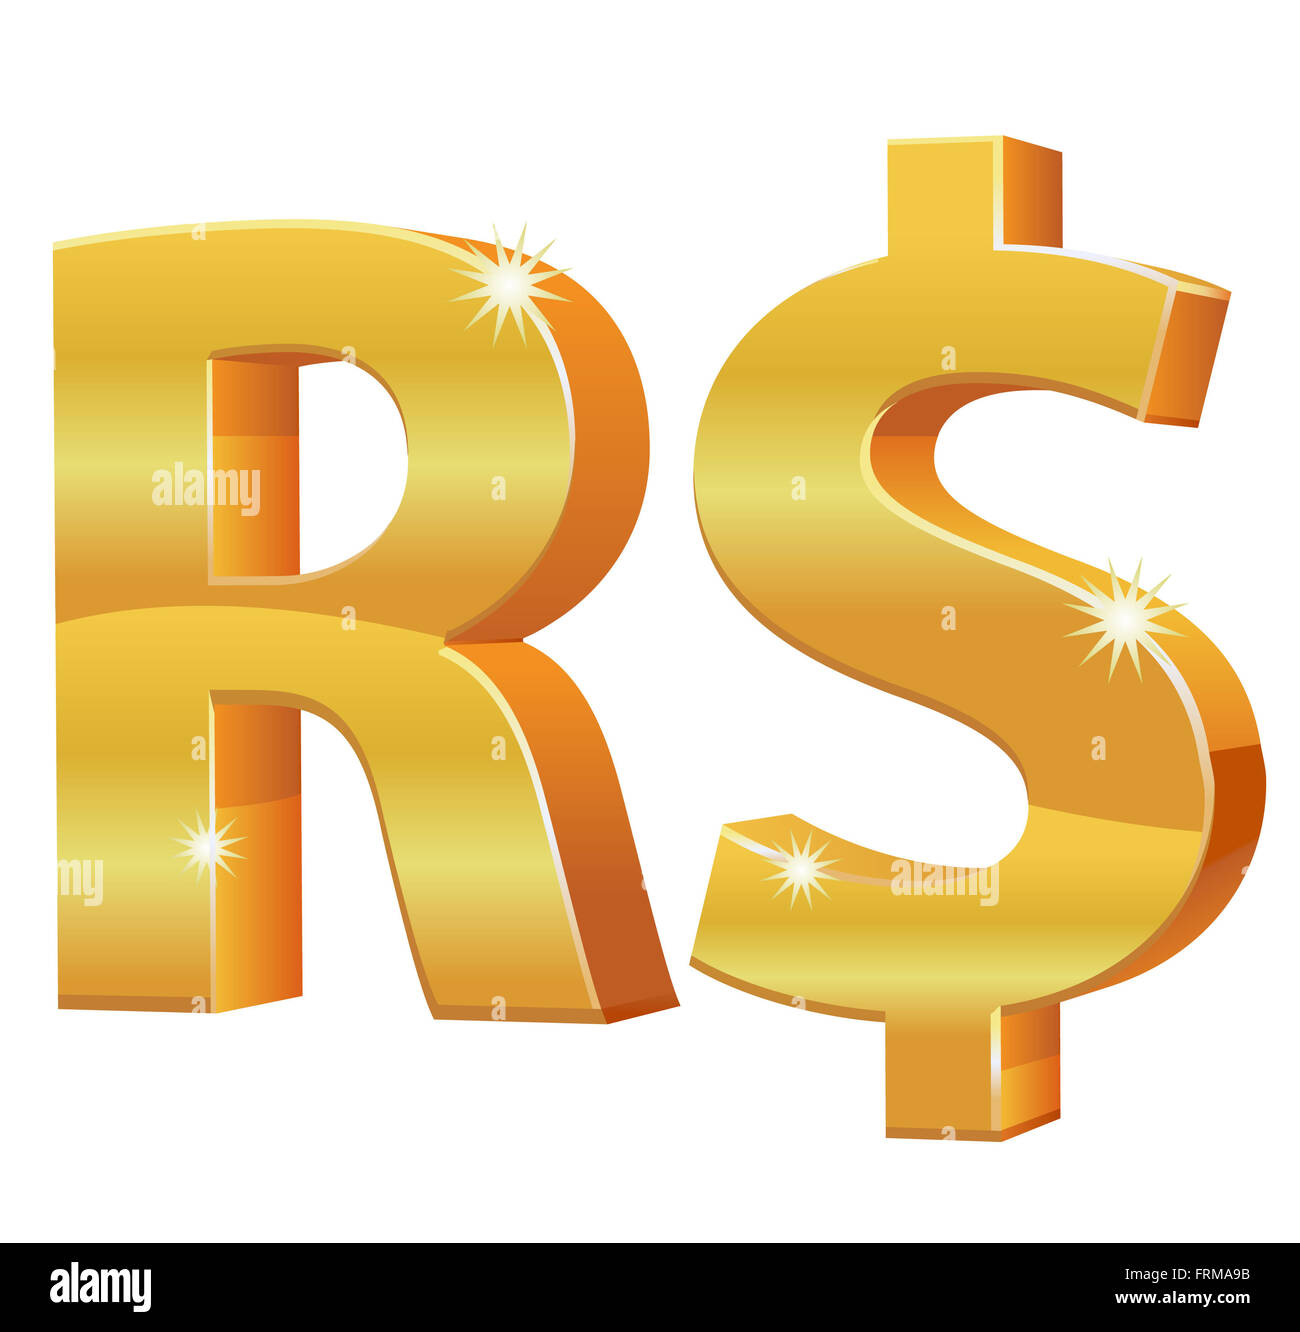 Gold brazilian real currency symbol stock photo 100636071 alamy gold brazilian real currency symbol biocorpaavc Image collections